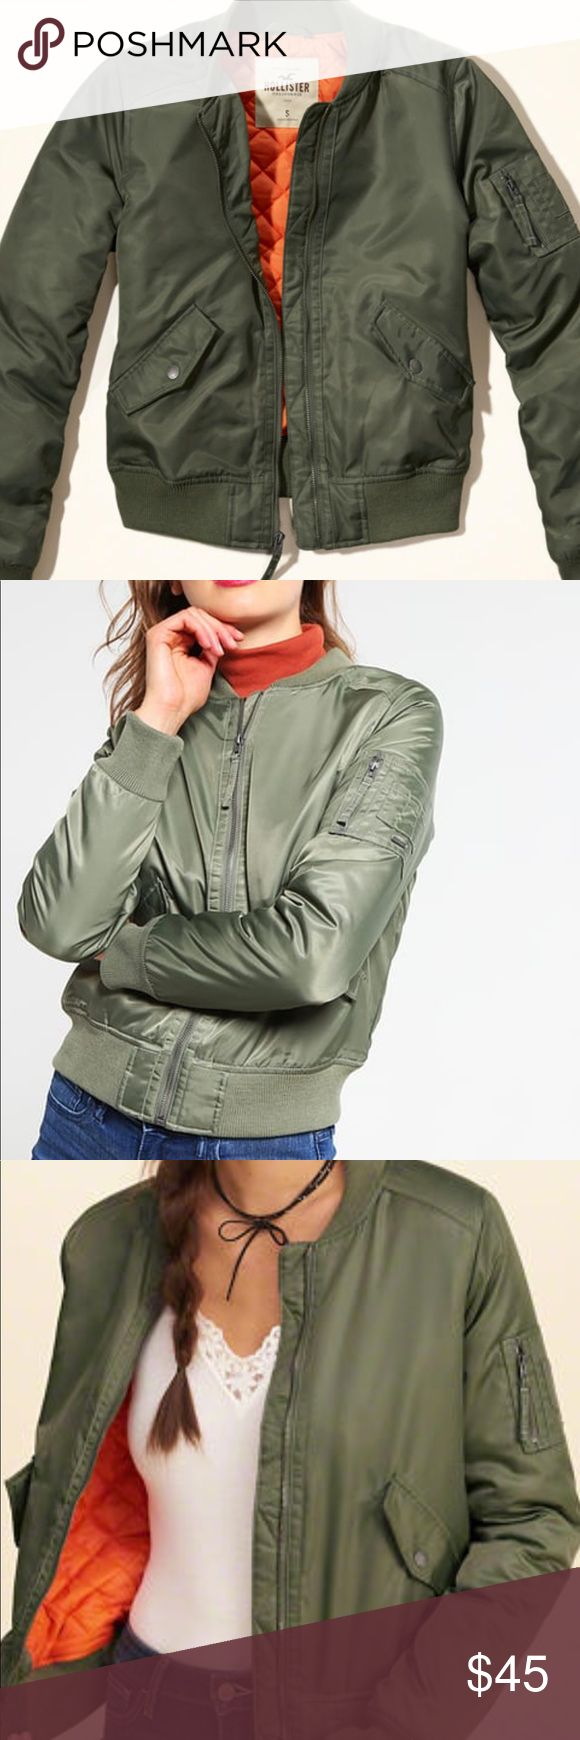 Hollister olive green bomber jacket Gently worn. Olive green nylon bomber jacket from Hollister. Orange interior. Zip front and snap pockets. No known flaws. Perfect for fall. Stock photos. Will post actual photos soon! Hollister Jackets & Coats